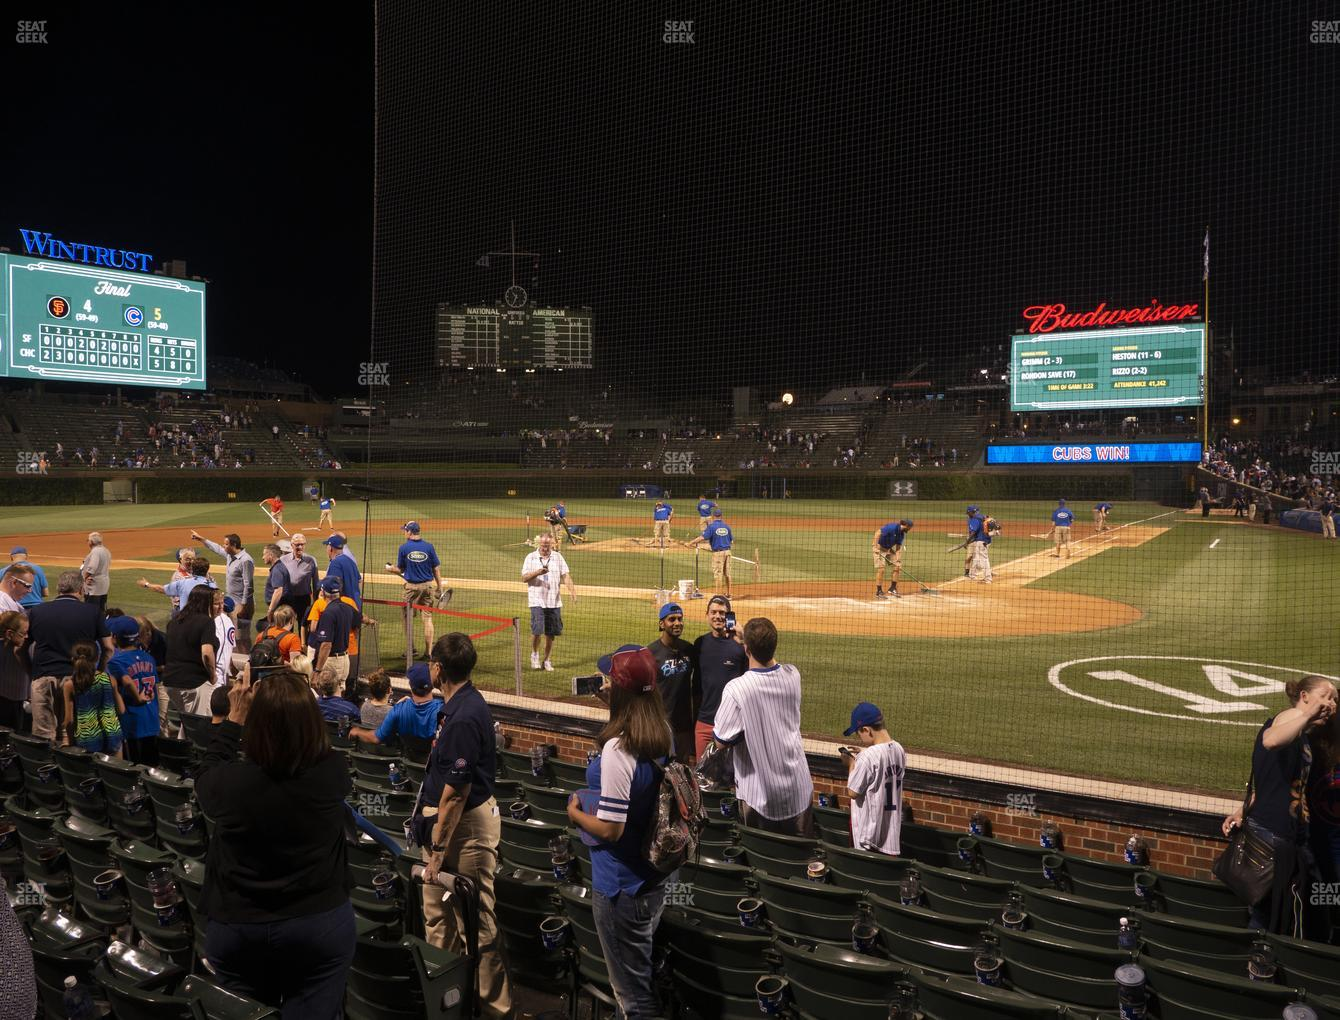 Chicago Cubs at Wrigley Field Club Box Home Plate 15 View